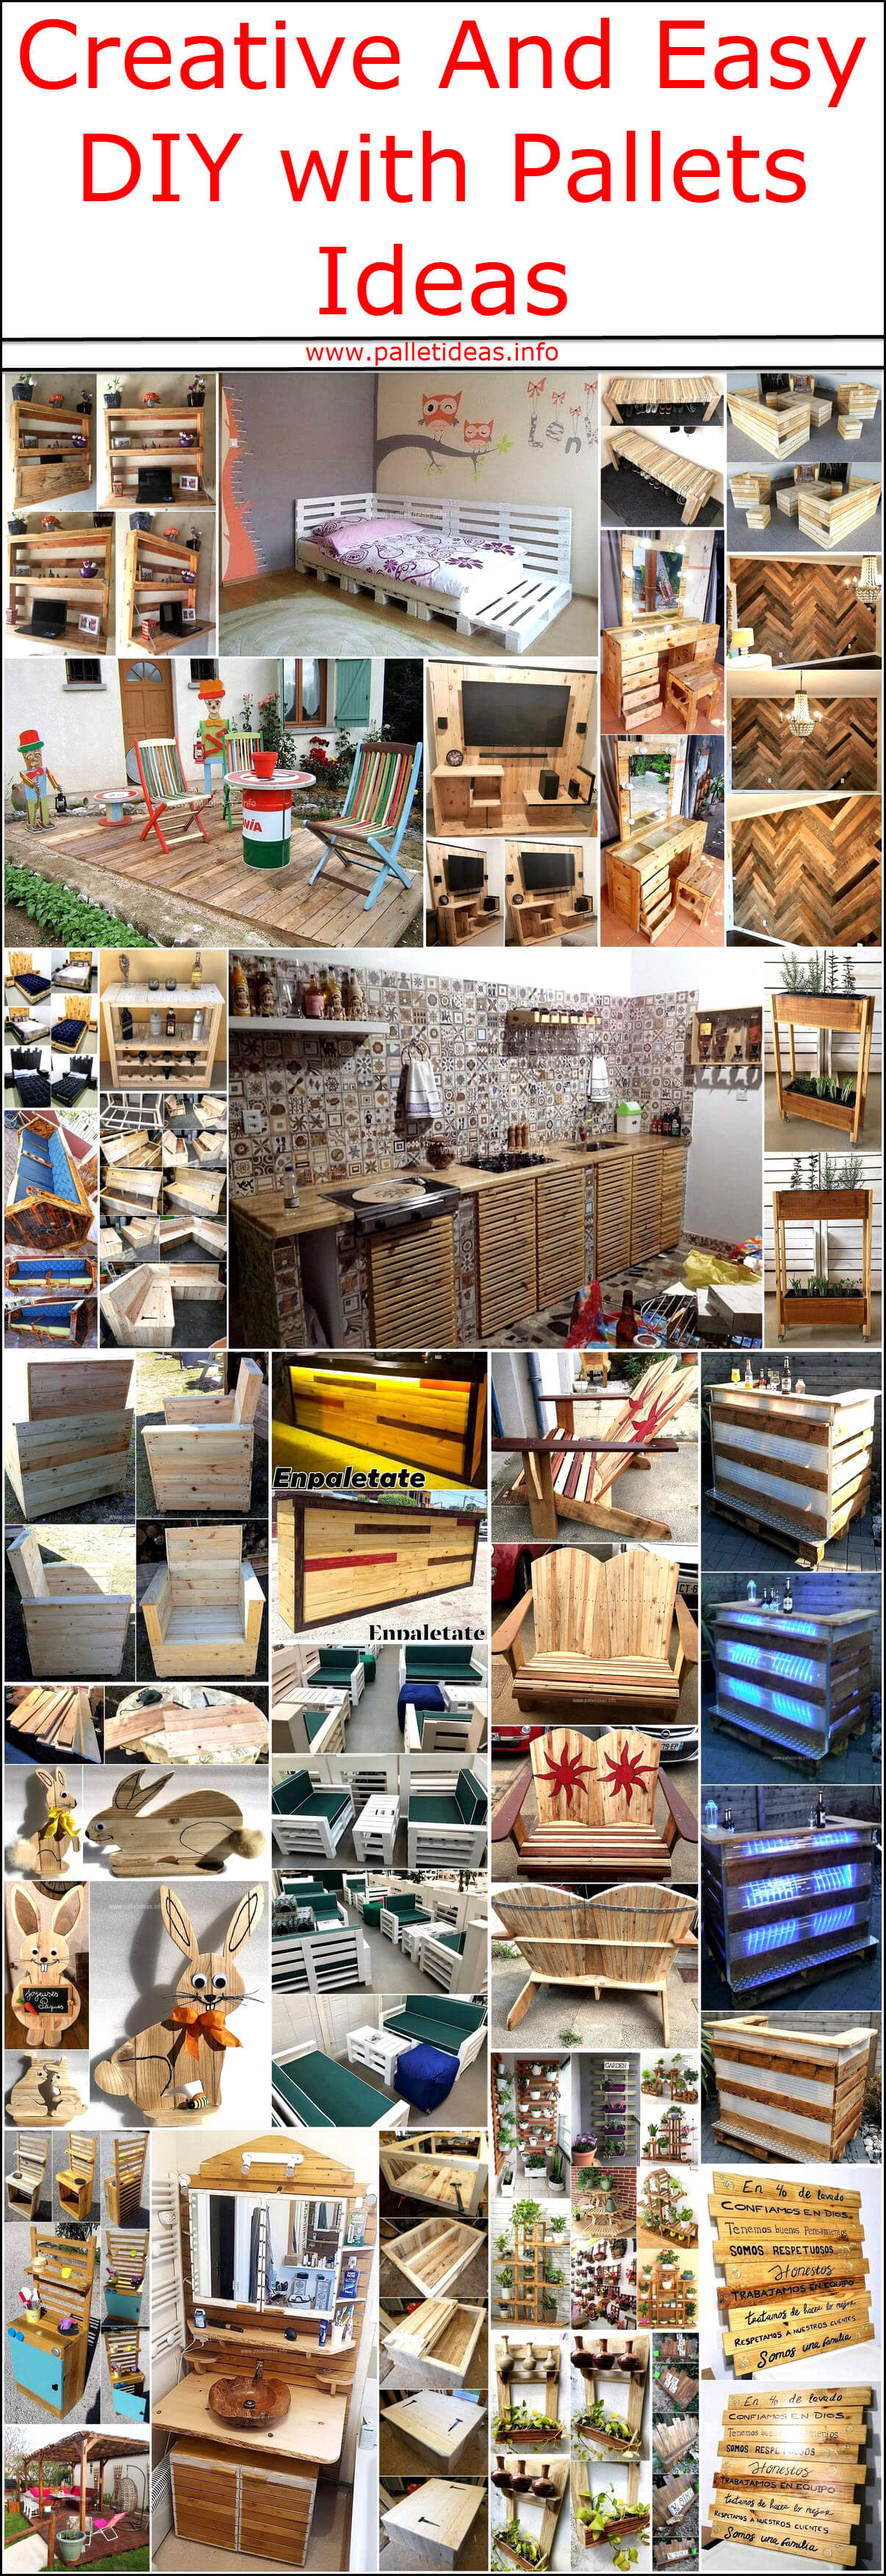 Creative And Easy Diy With Pallets Ideas Pallet Ideas